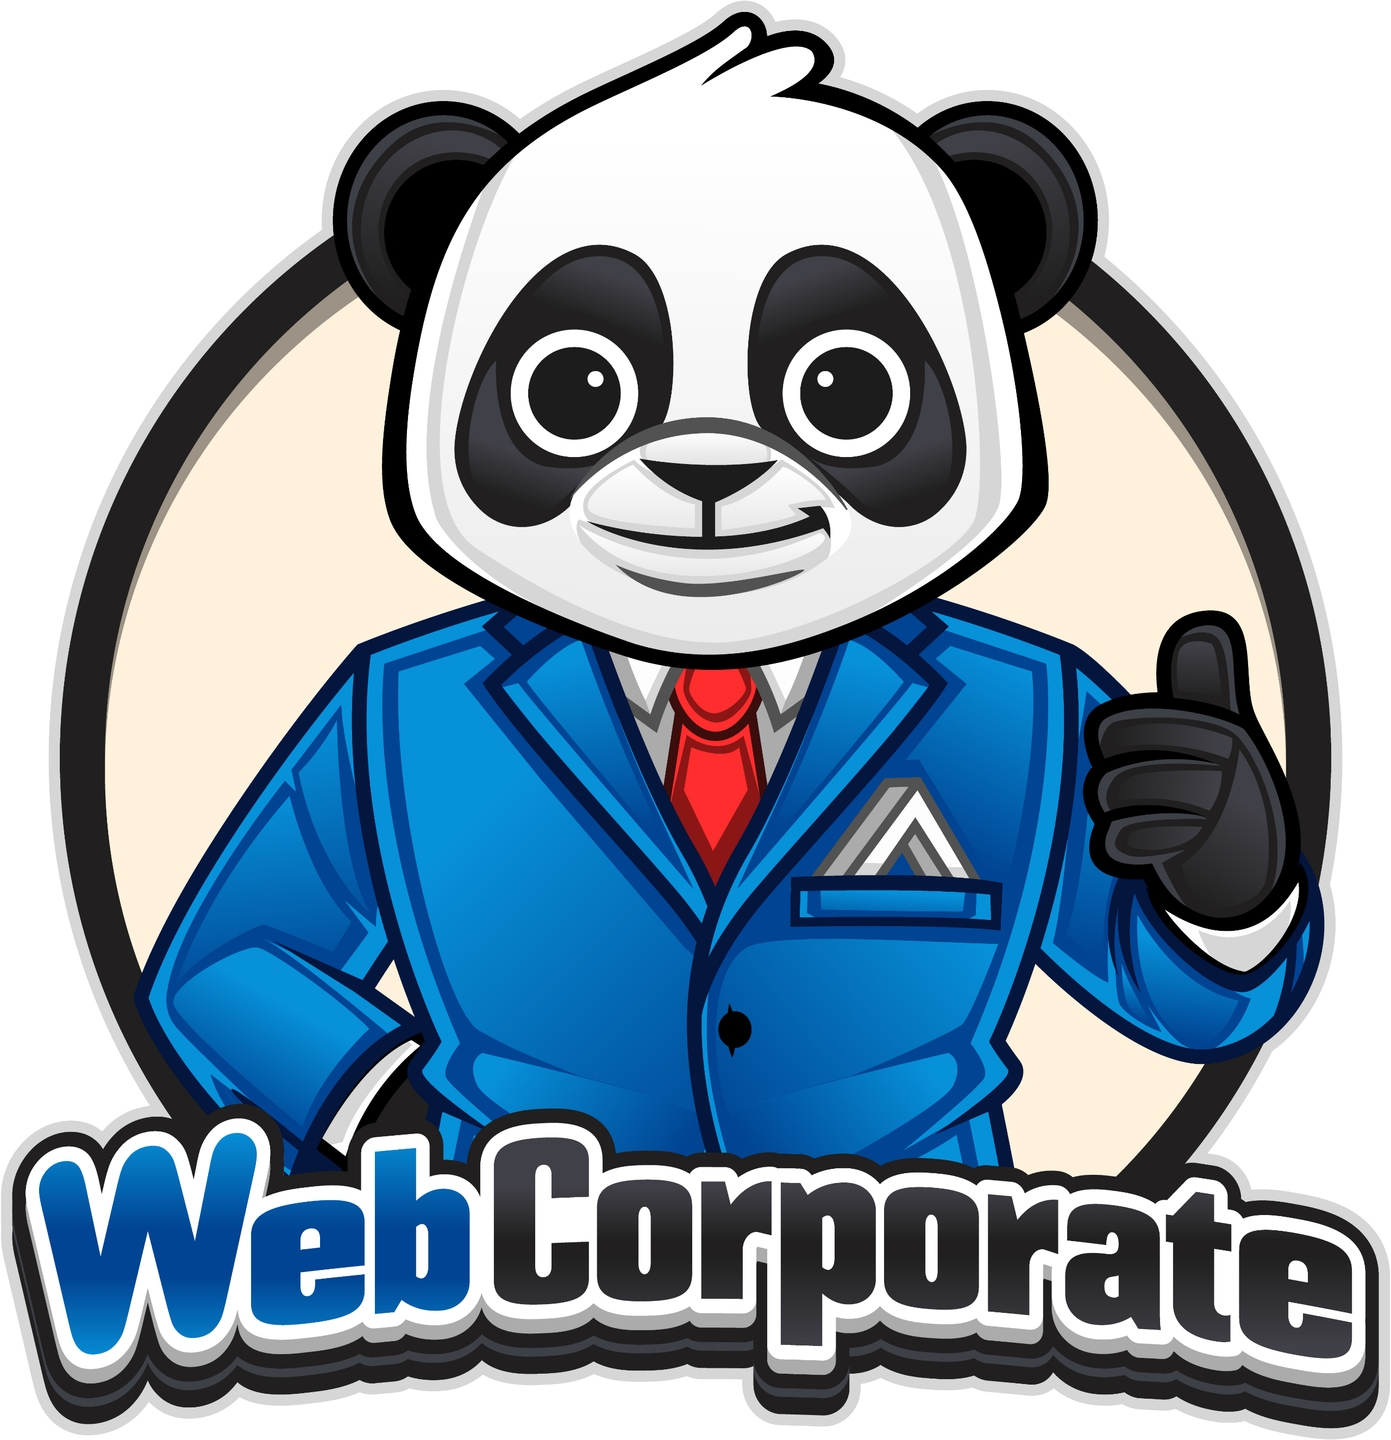 Web Corporate (@webcorporate1) Cover Image